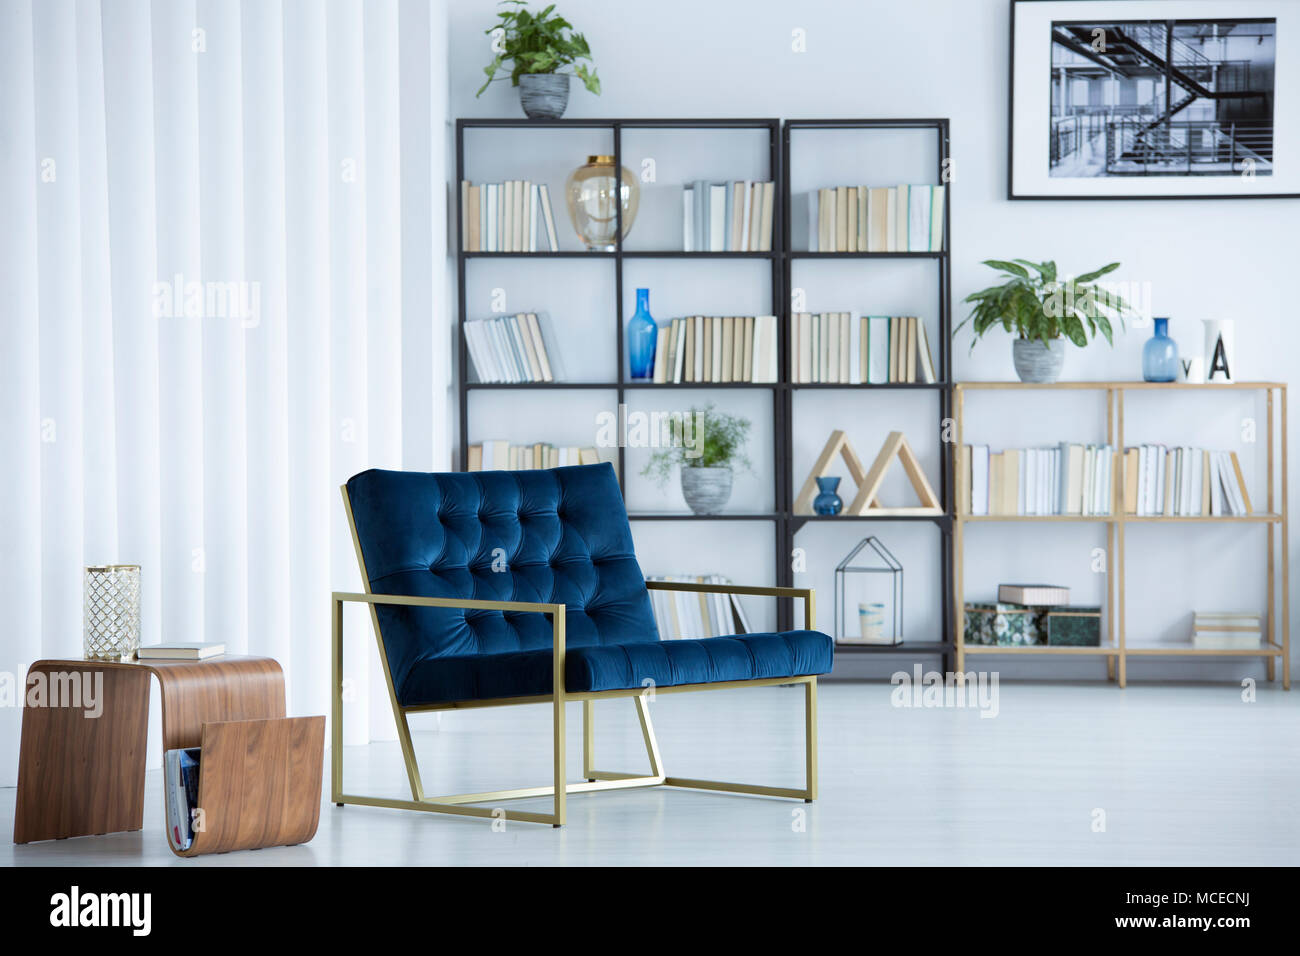 Navy Blue Armchair Next To Wooden Table In Cozy Living Room Interior With Bookshelf And Poster